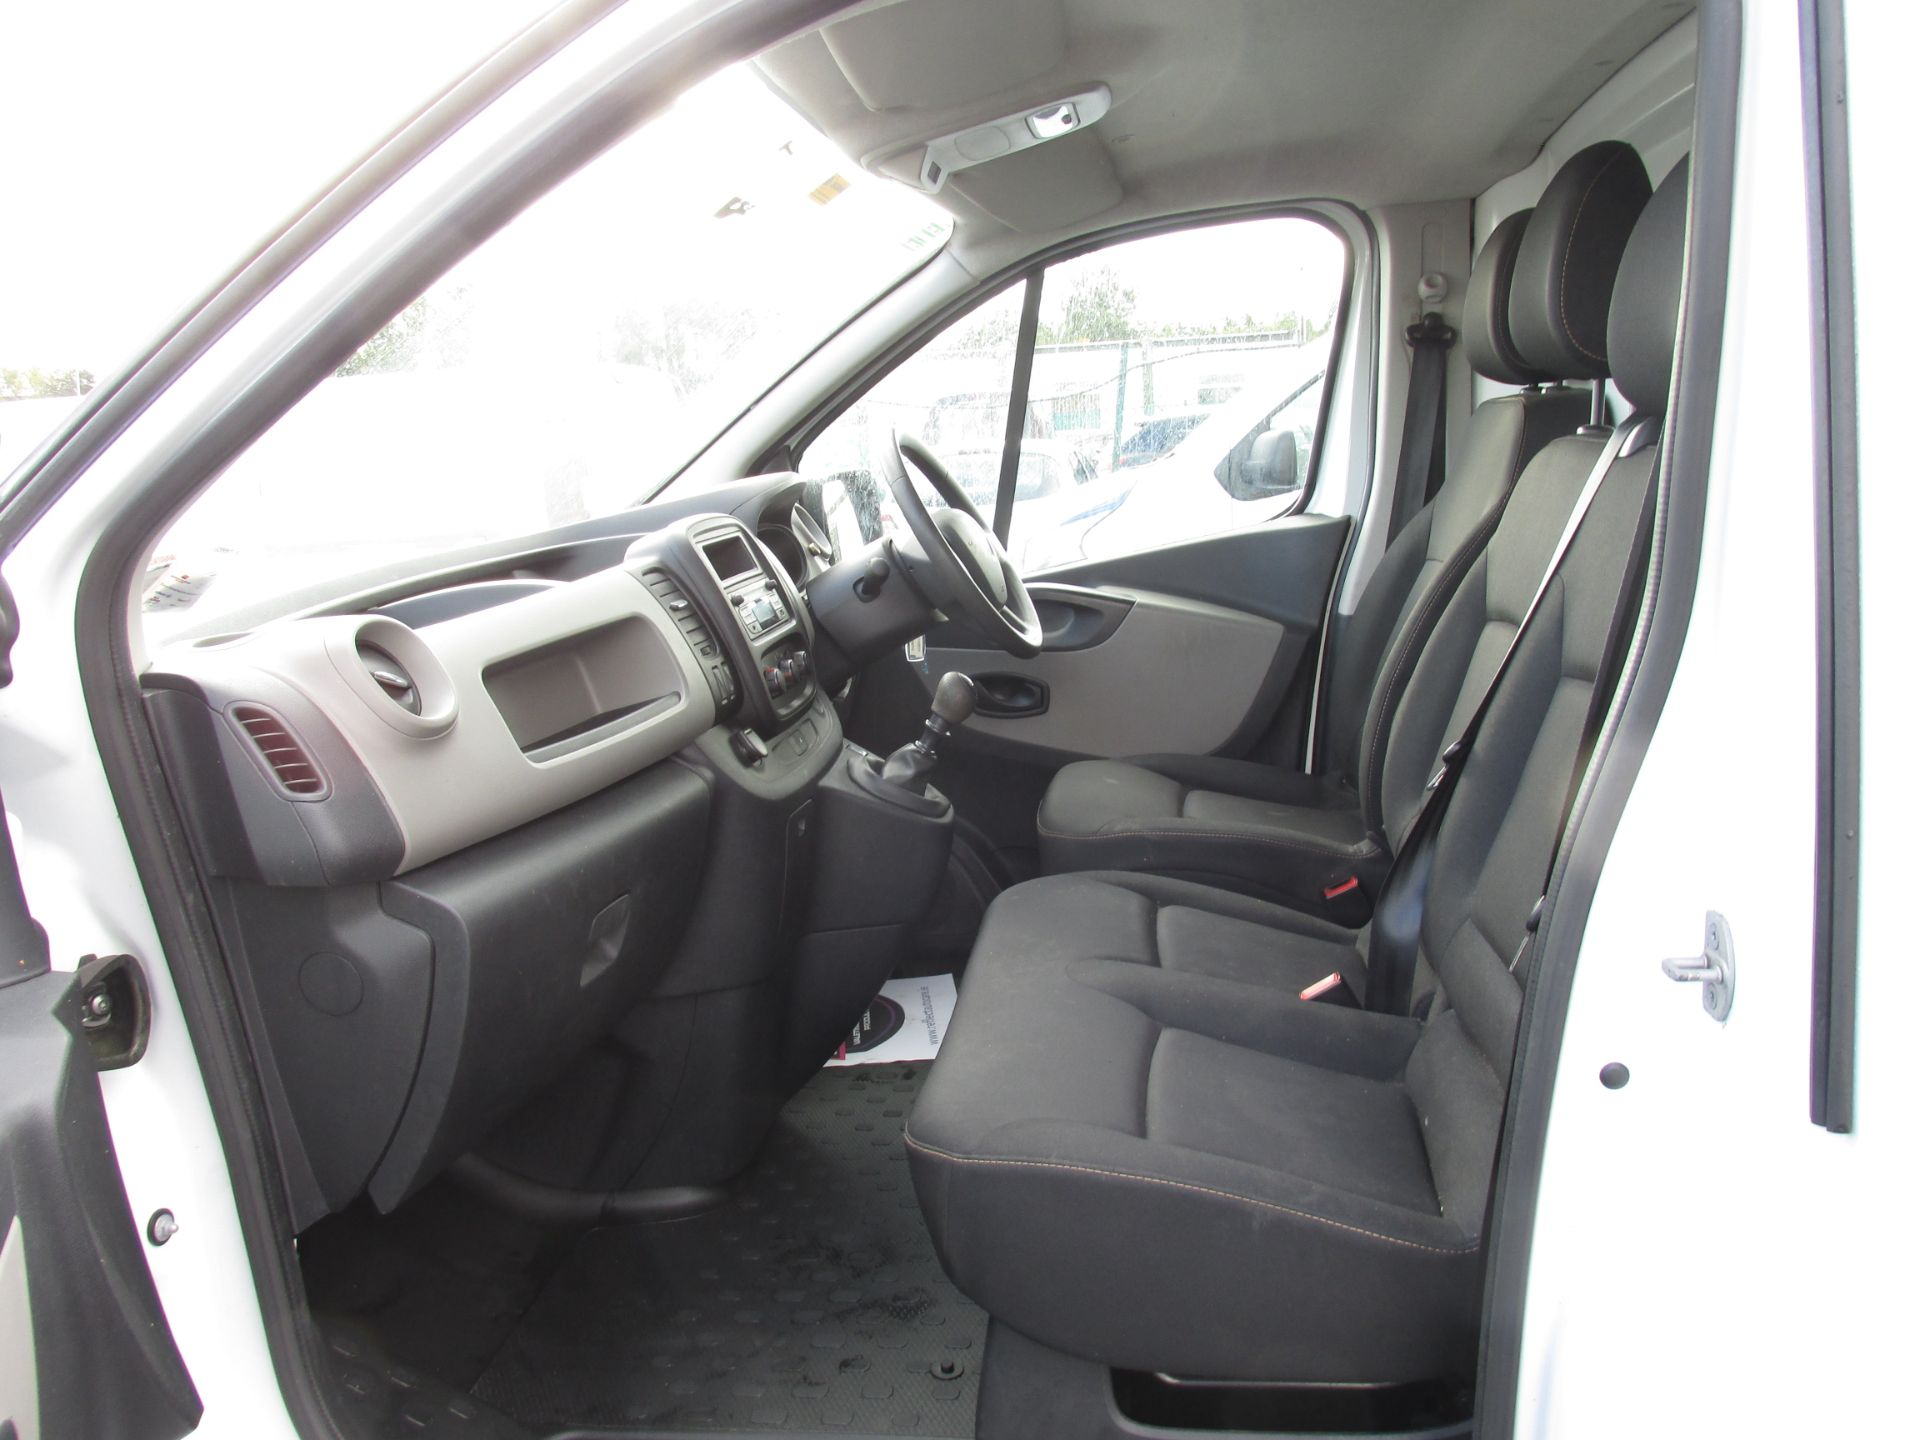 2017 Renault Trafic LL29 DCI 120 Business 3DR (171D25712) Image 11